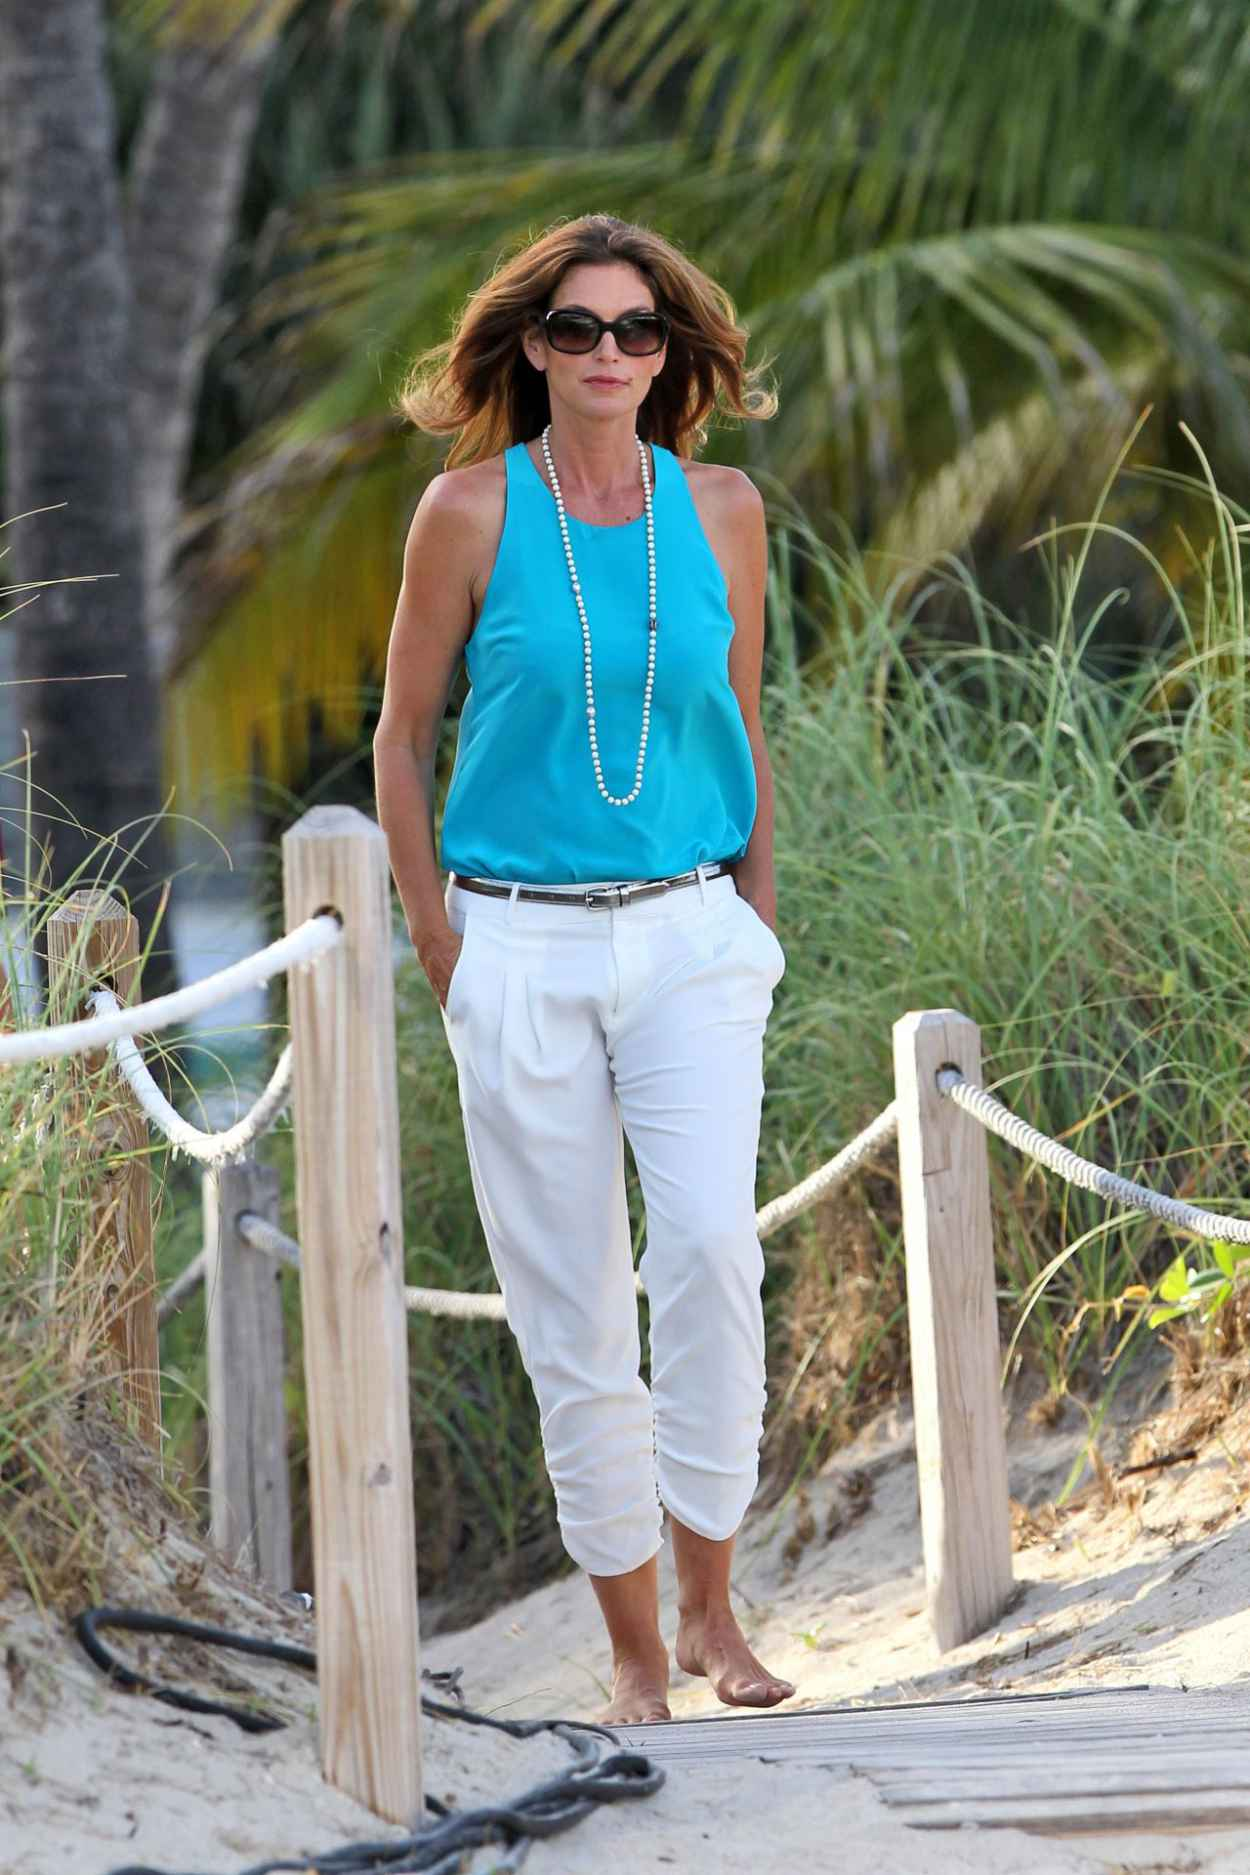 Cindy Crawford Filming a Commercial on Miami Beach - September 2015-1